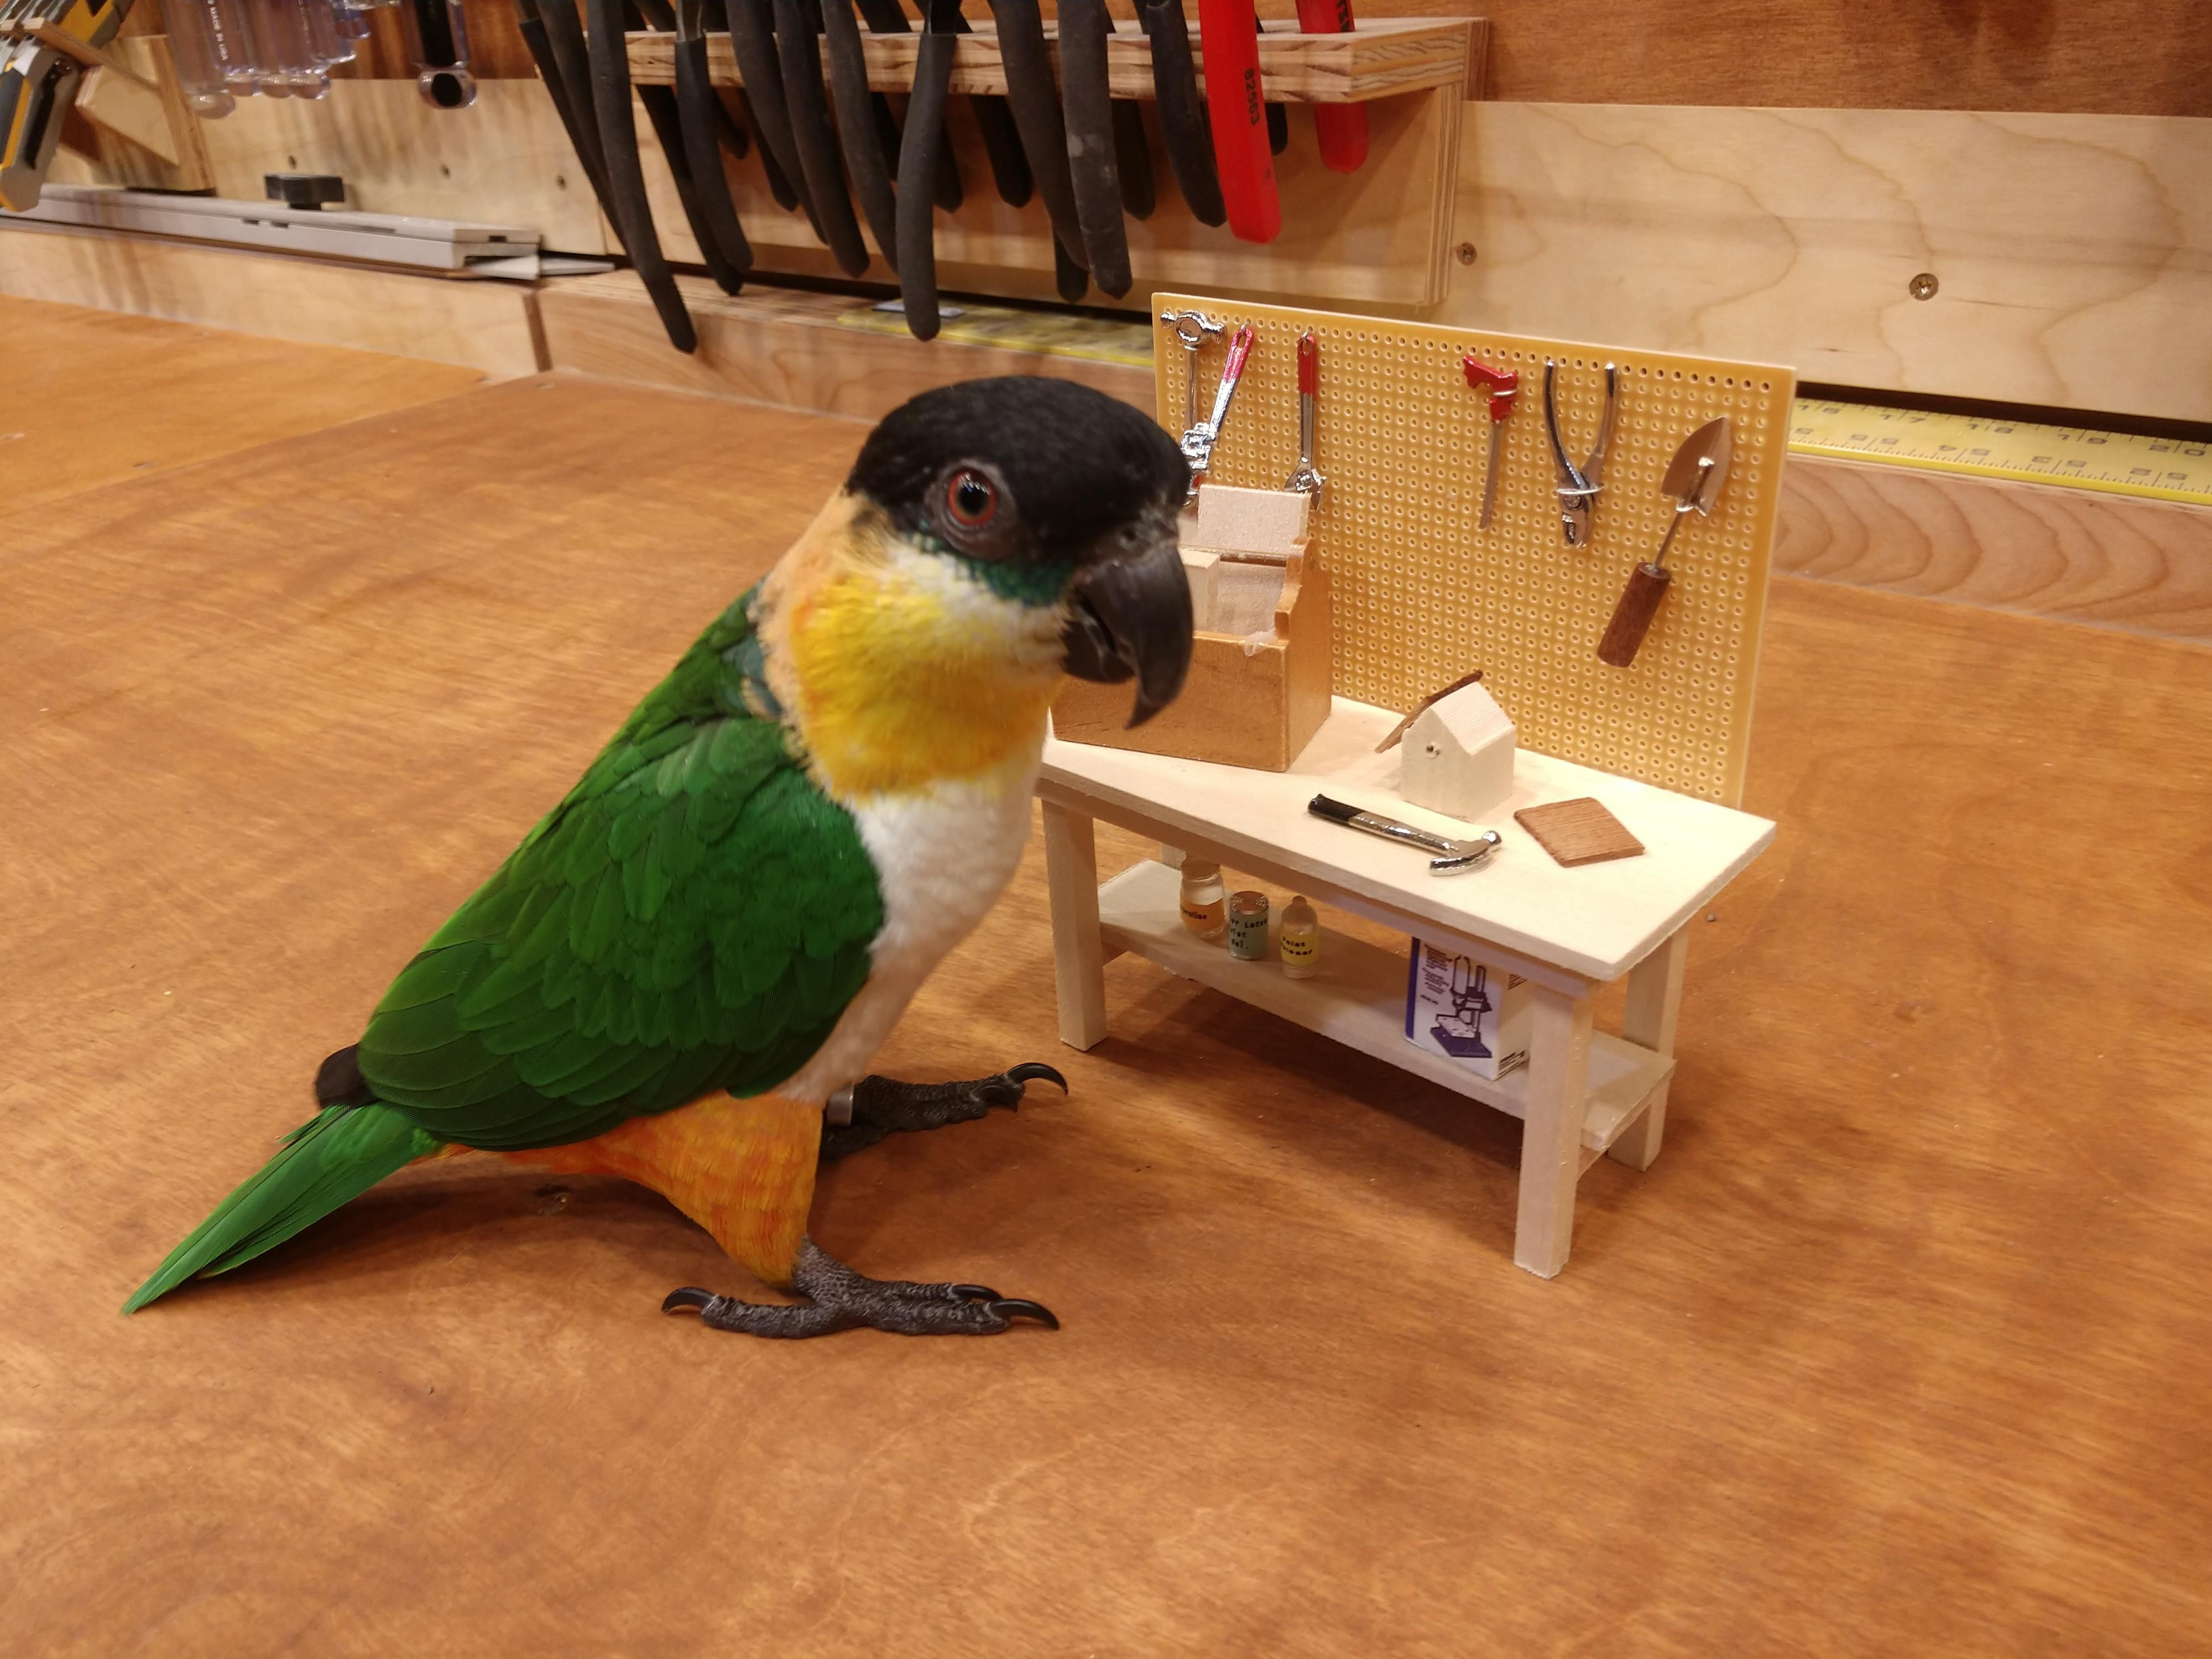 Parrot on a workbench with his workbench